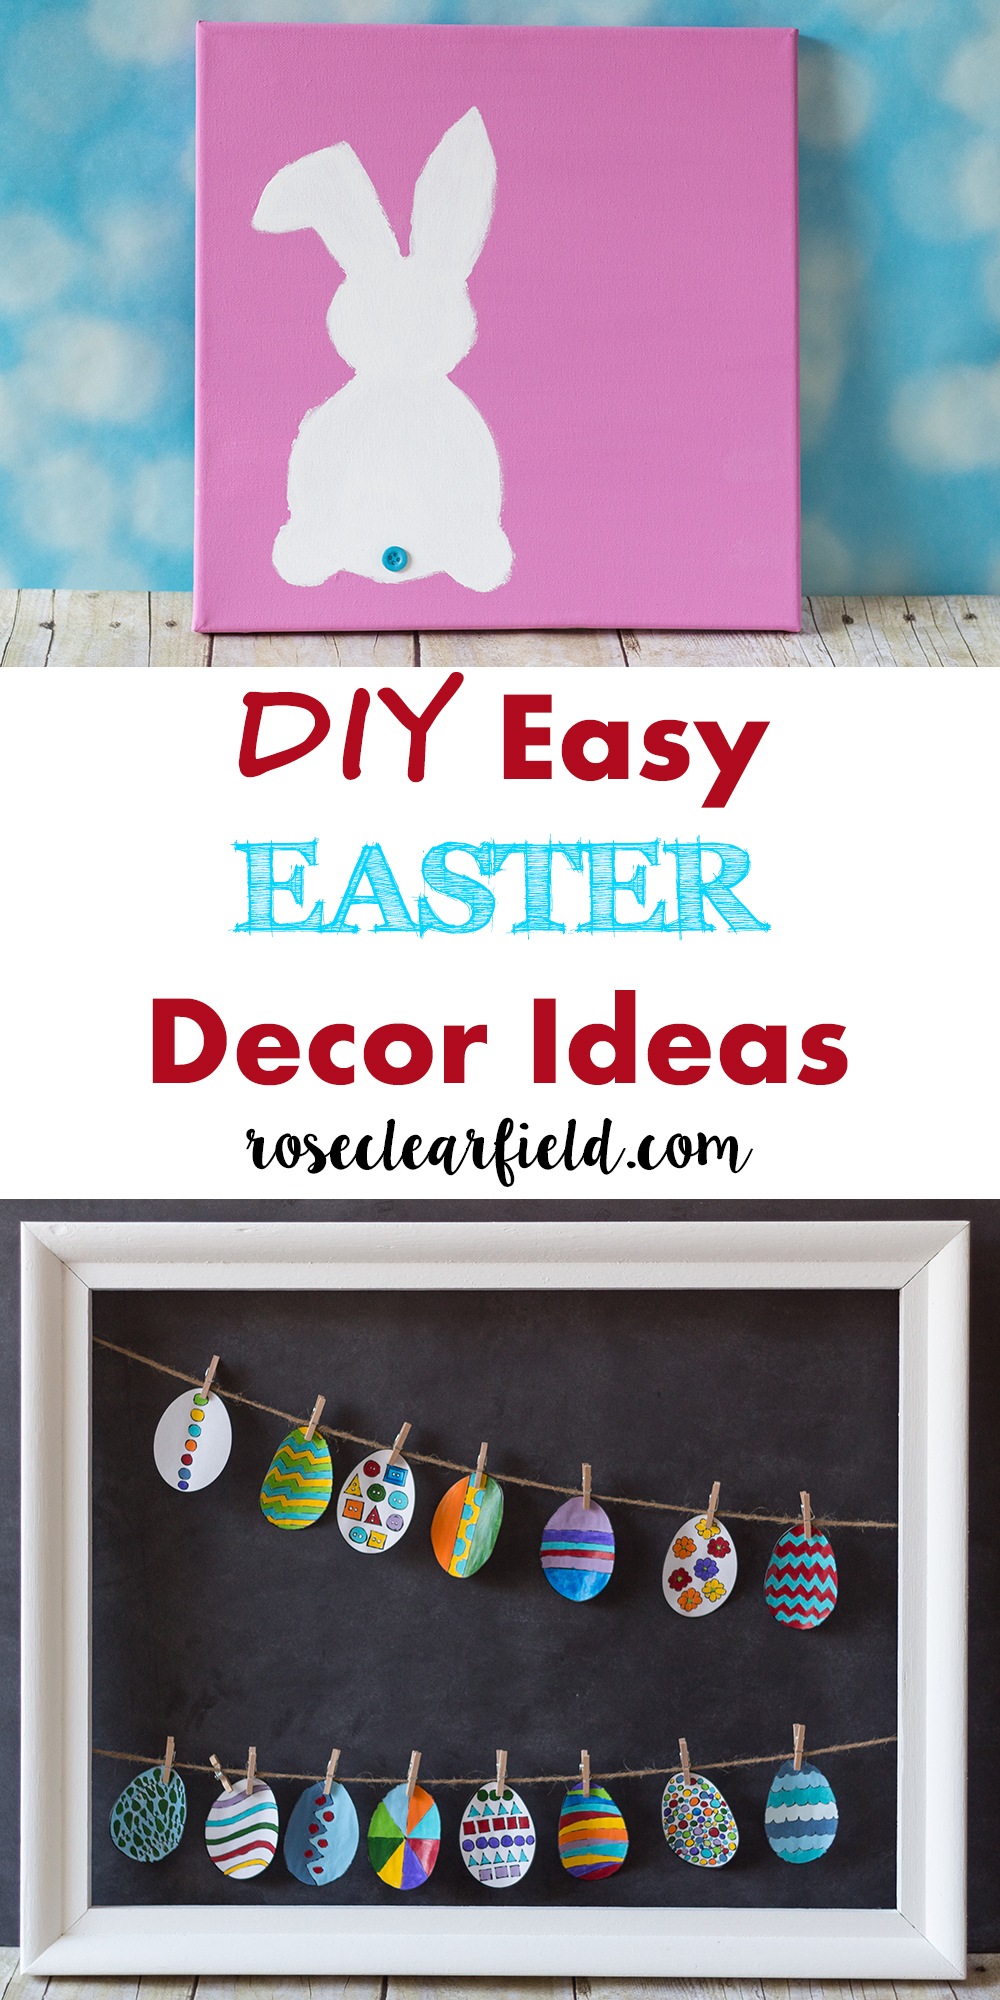 DIY Easy Easter Decor Ideas | http://www.roseclearfield.com